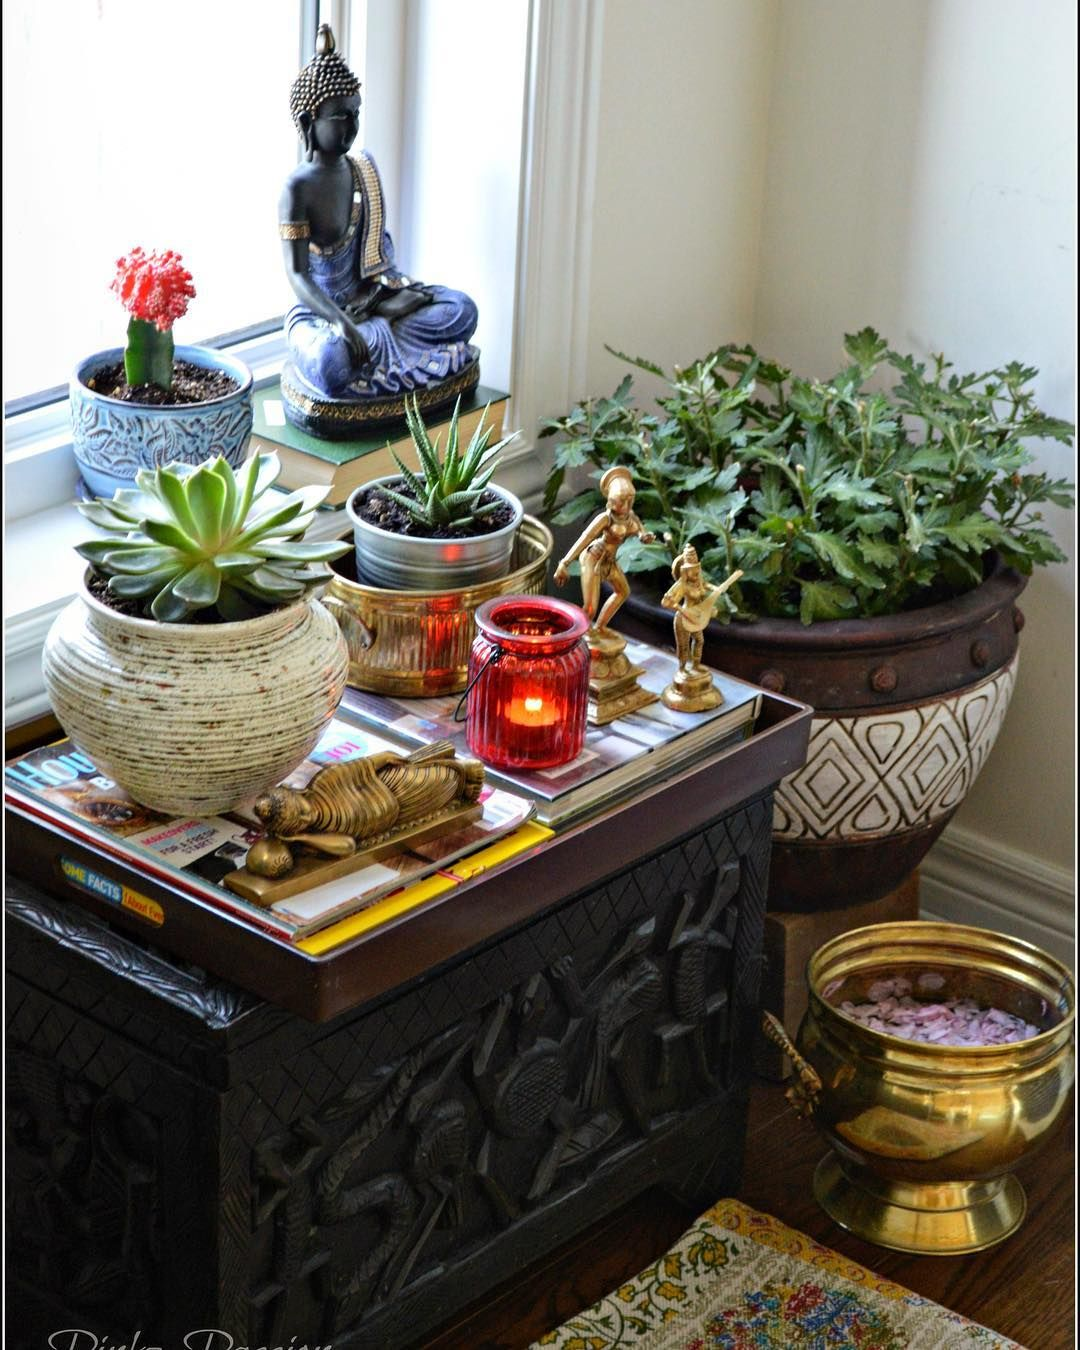 Indoor Garden Zen Place Buddha Corner Indoor Plants Styling Interiors With Plants Zen Corner Peaceful Co Living Room Decor On A Budget Buddha Decor Decor #zen #decorating #ideas #living #room